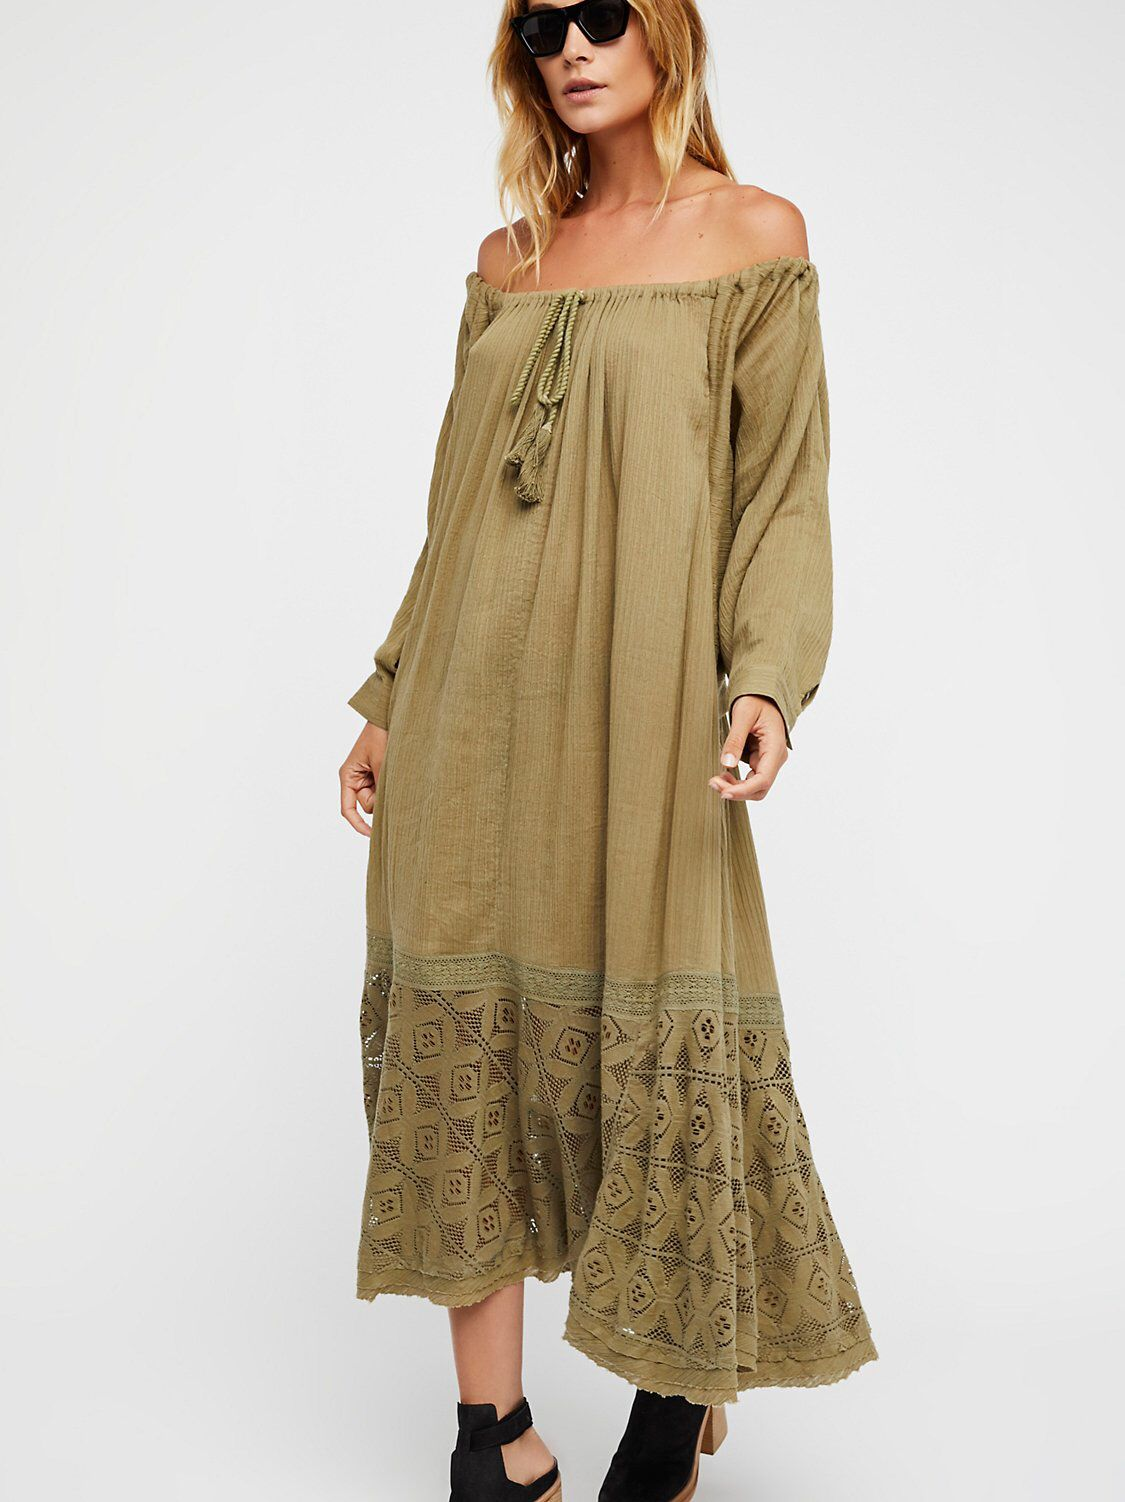 69b480e361 The Endless Summer Camilla Maxi Dress by at Free People